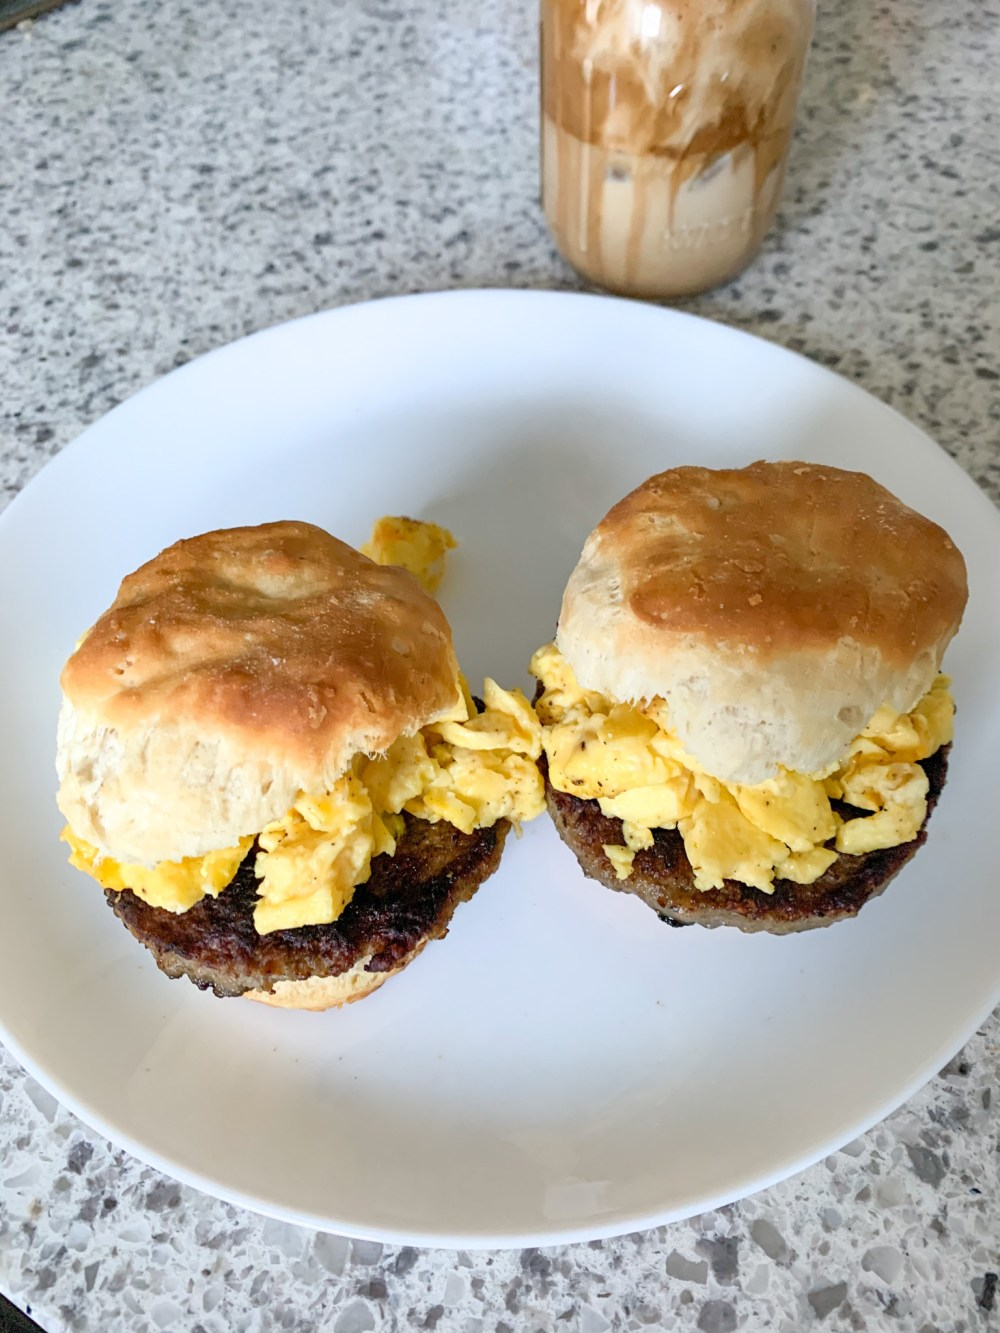 scrambled egg over sausage patty on biscuit